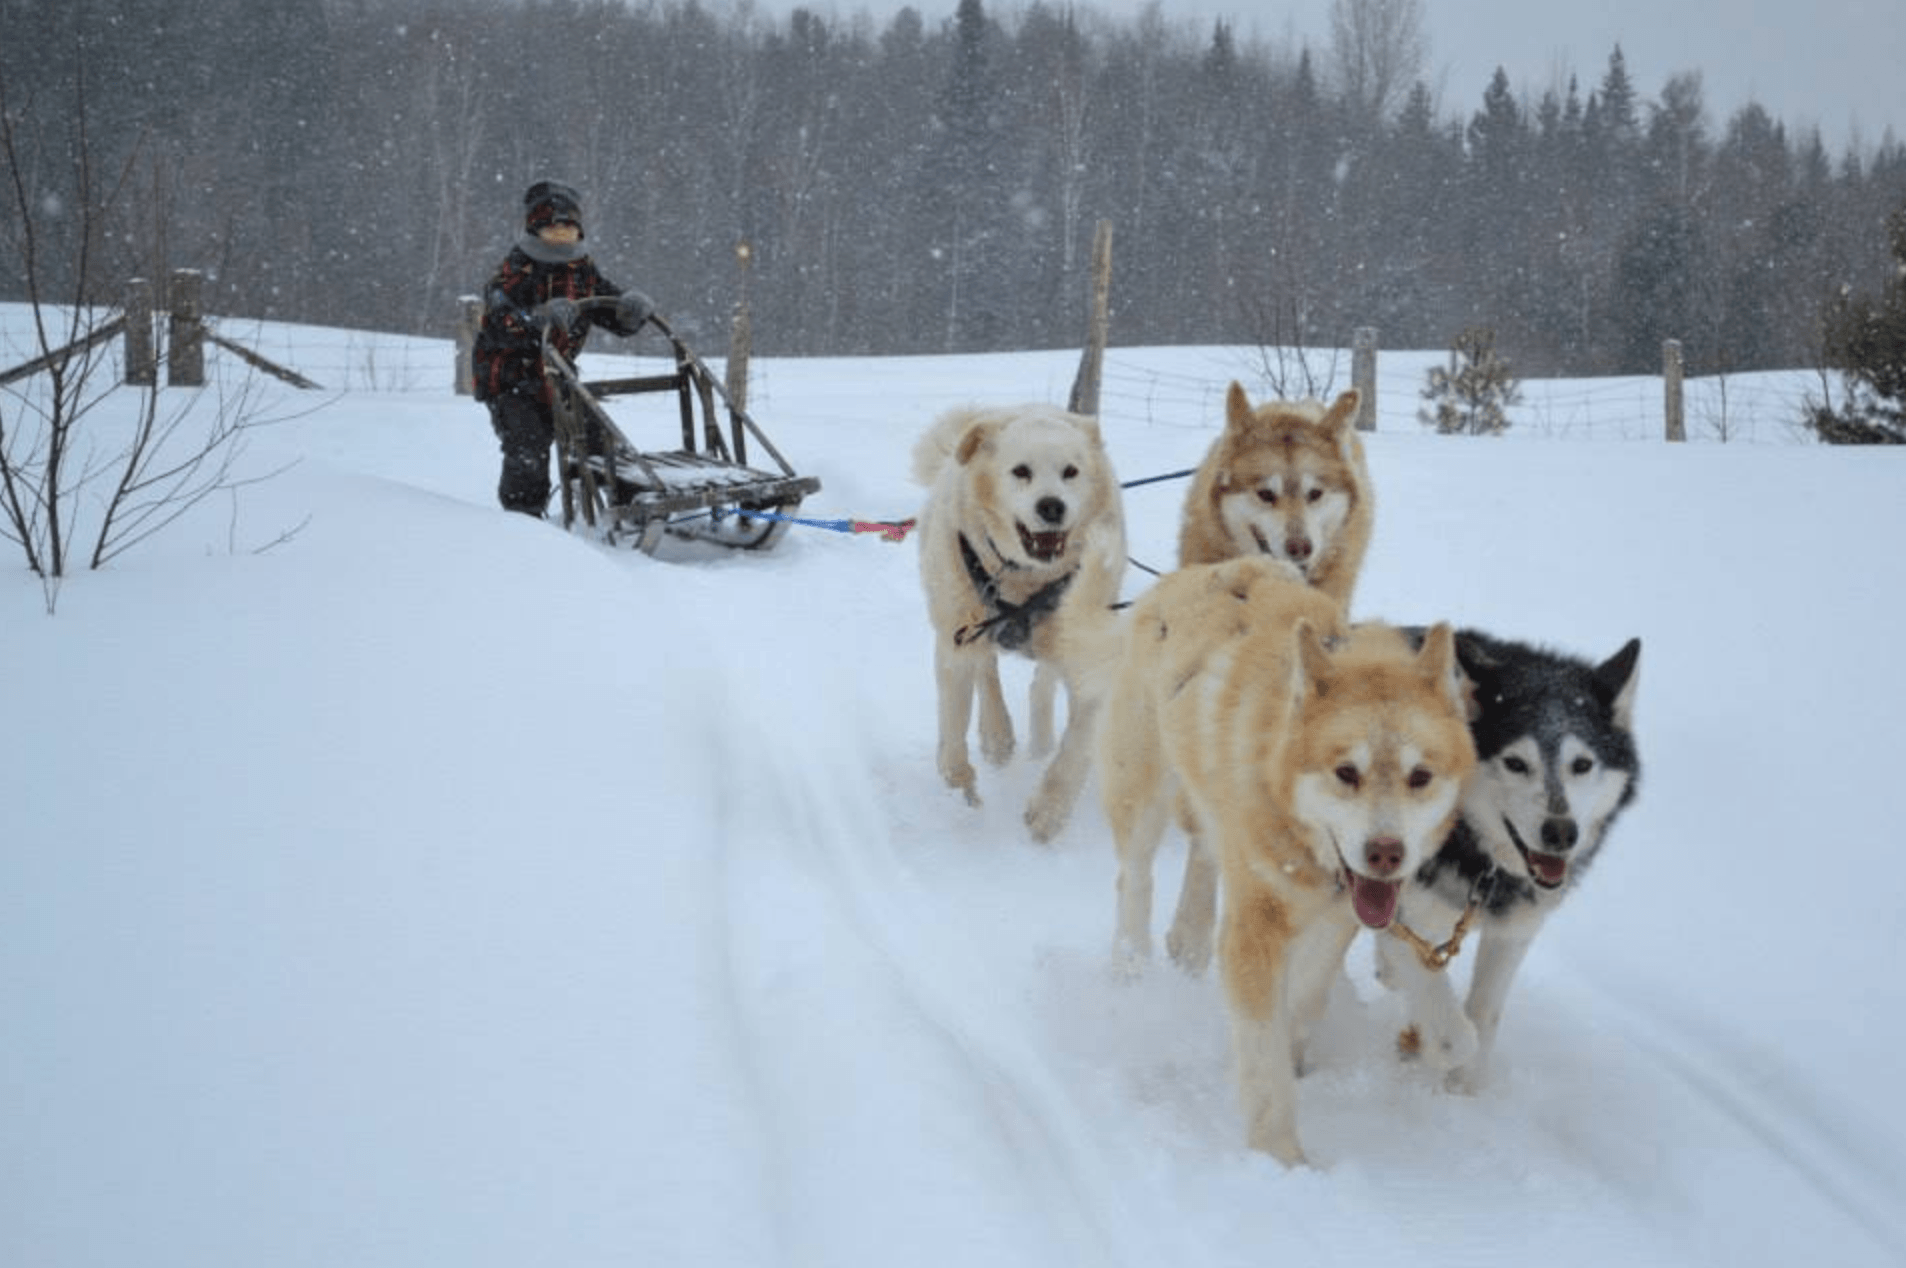 Children as young as 12 can drive their own dog-sledding team at Chiens-Traineaux Petite-Nation